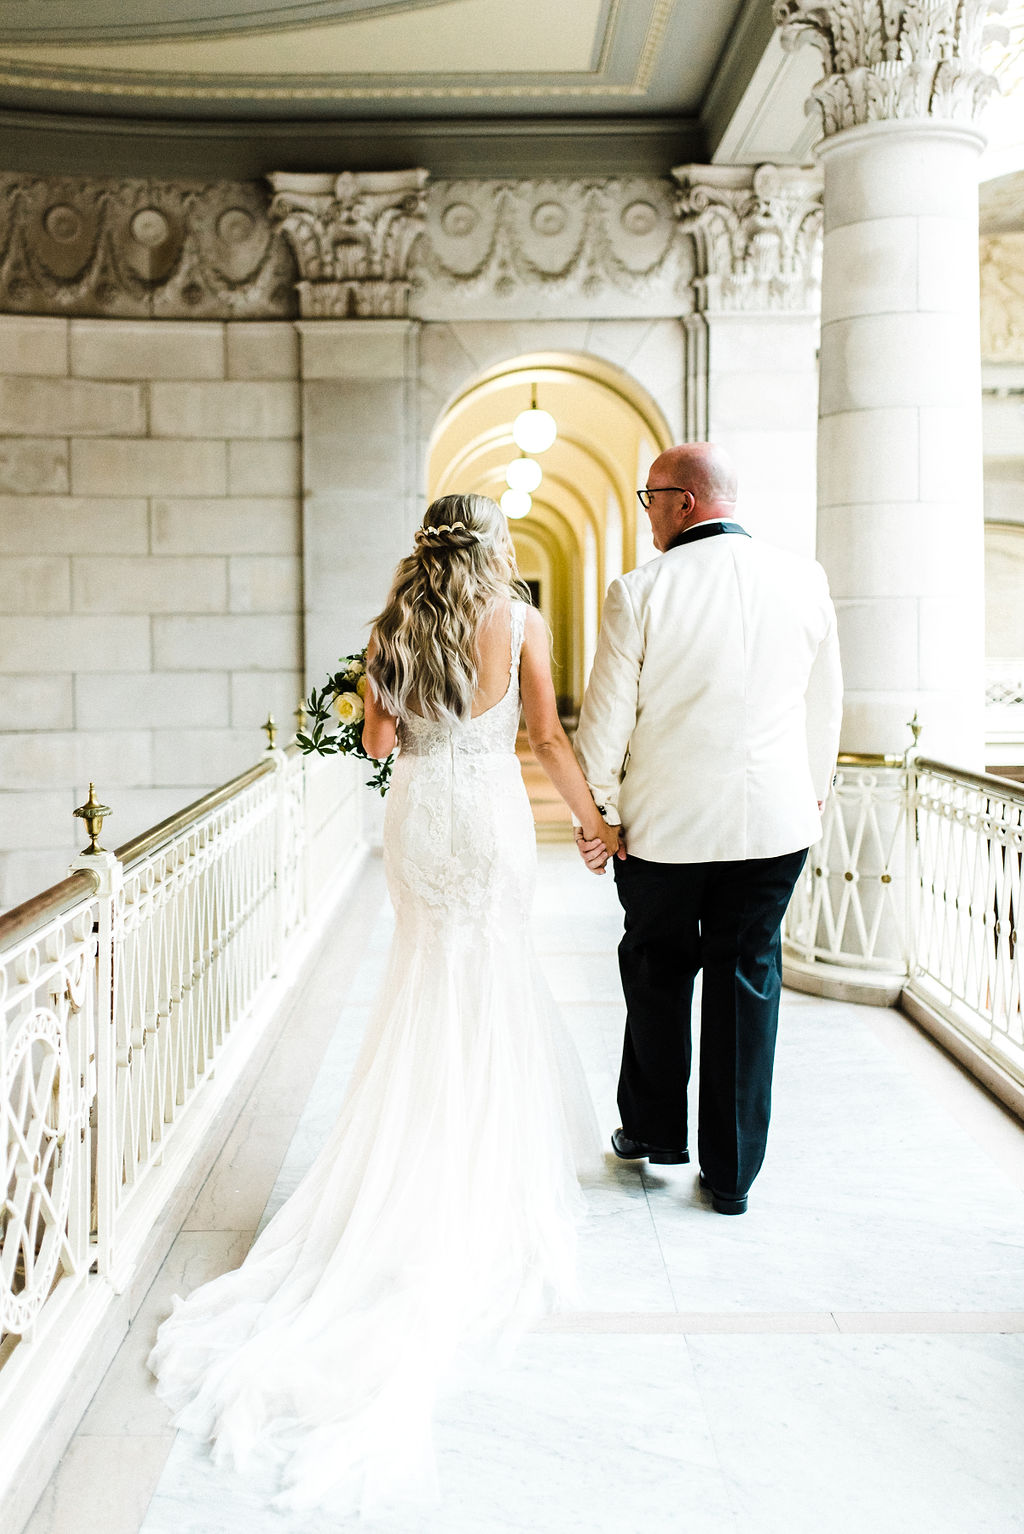 Melanie & Tyler Anderson Married at The Hartford City Hall - Pearl Weddings & Events